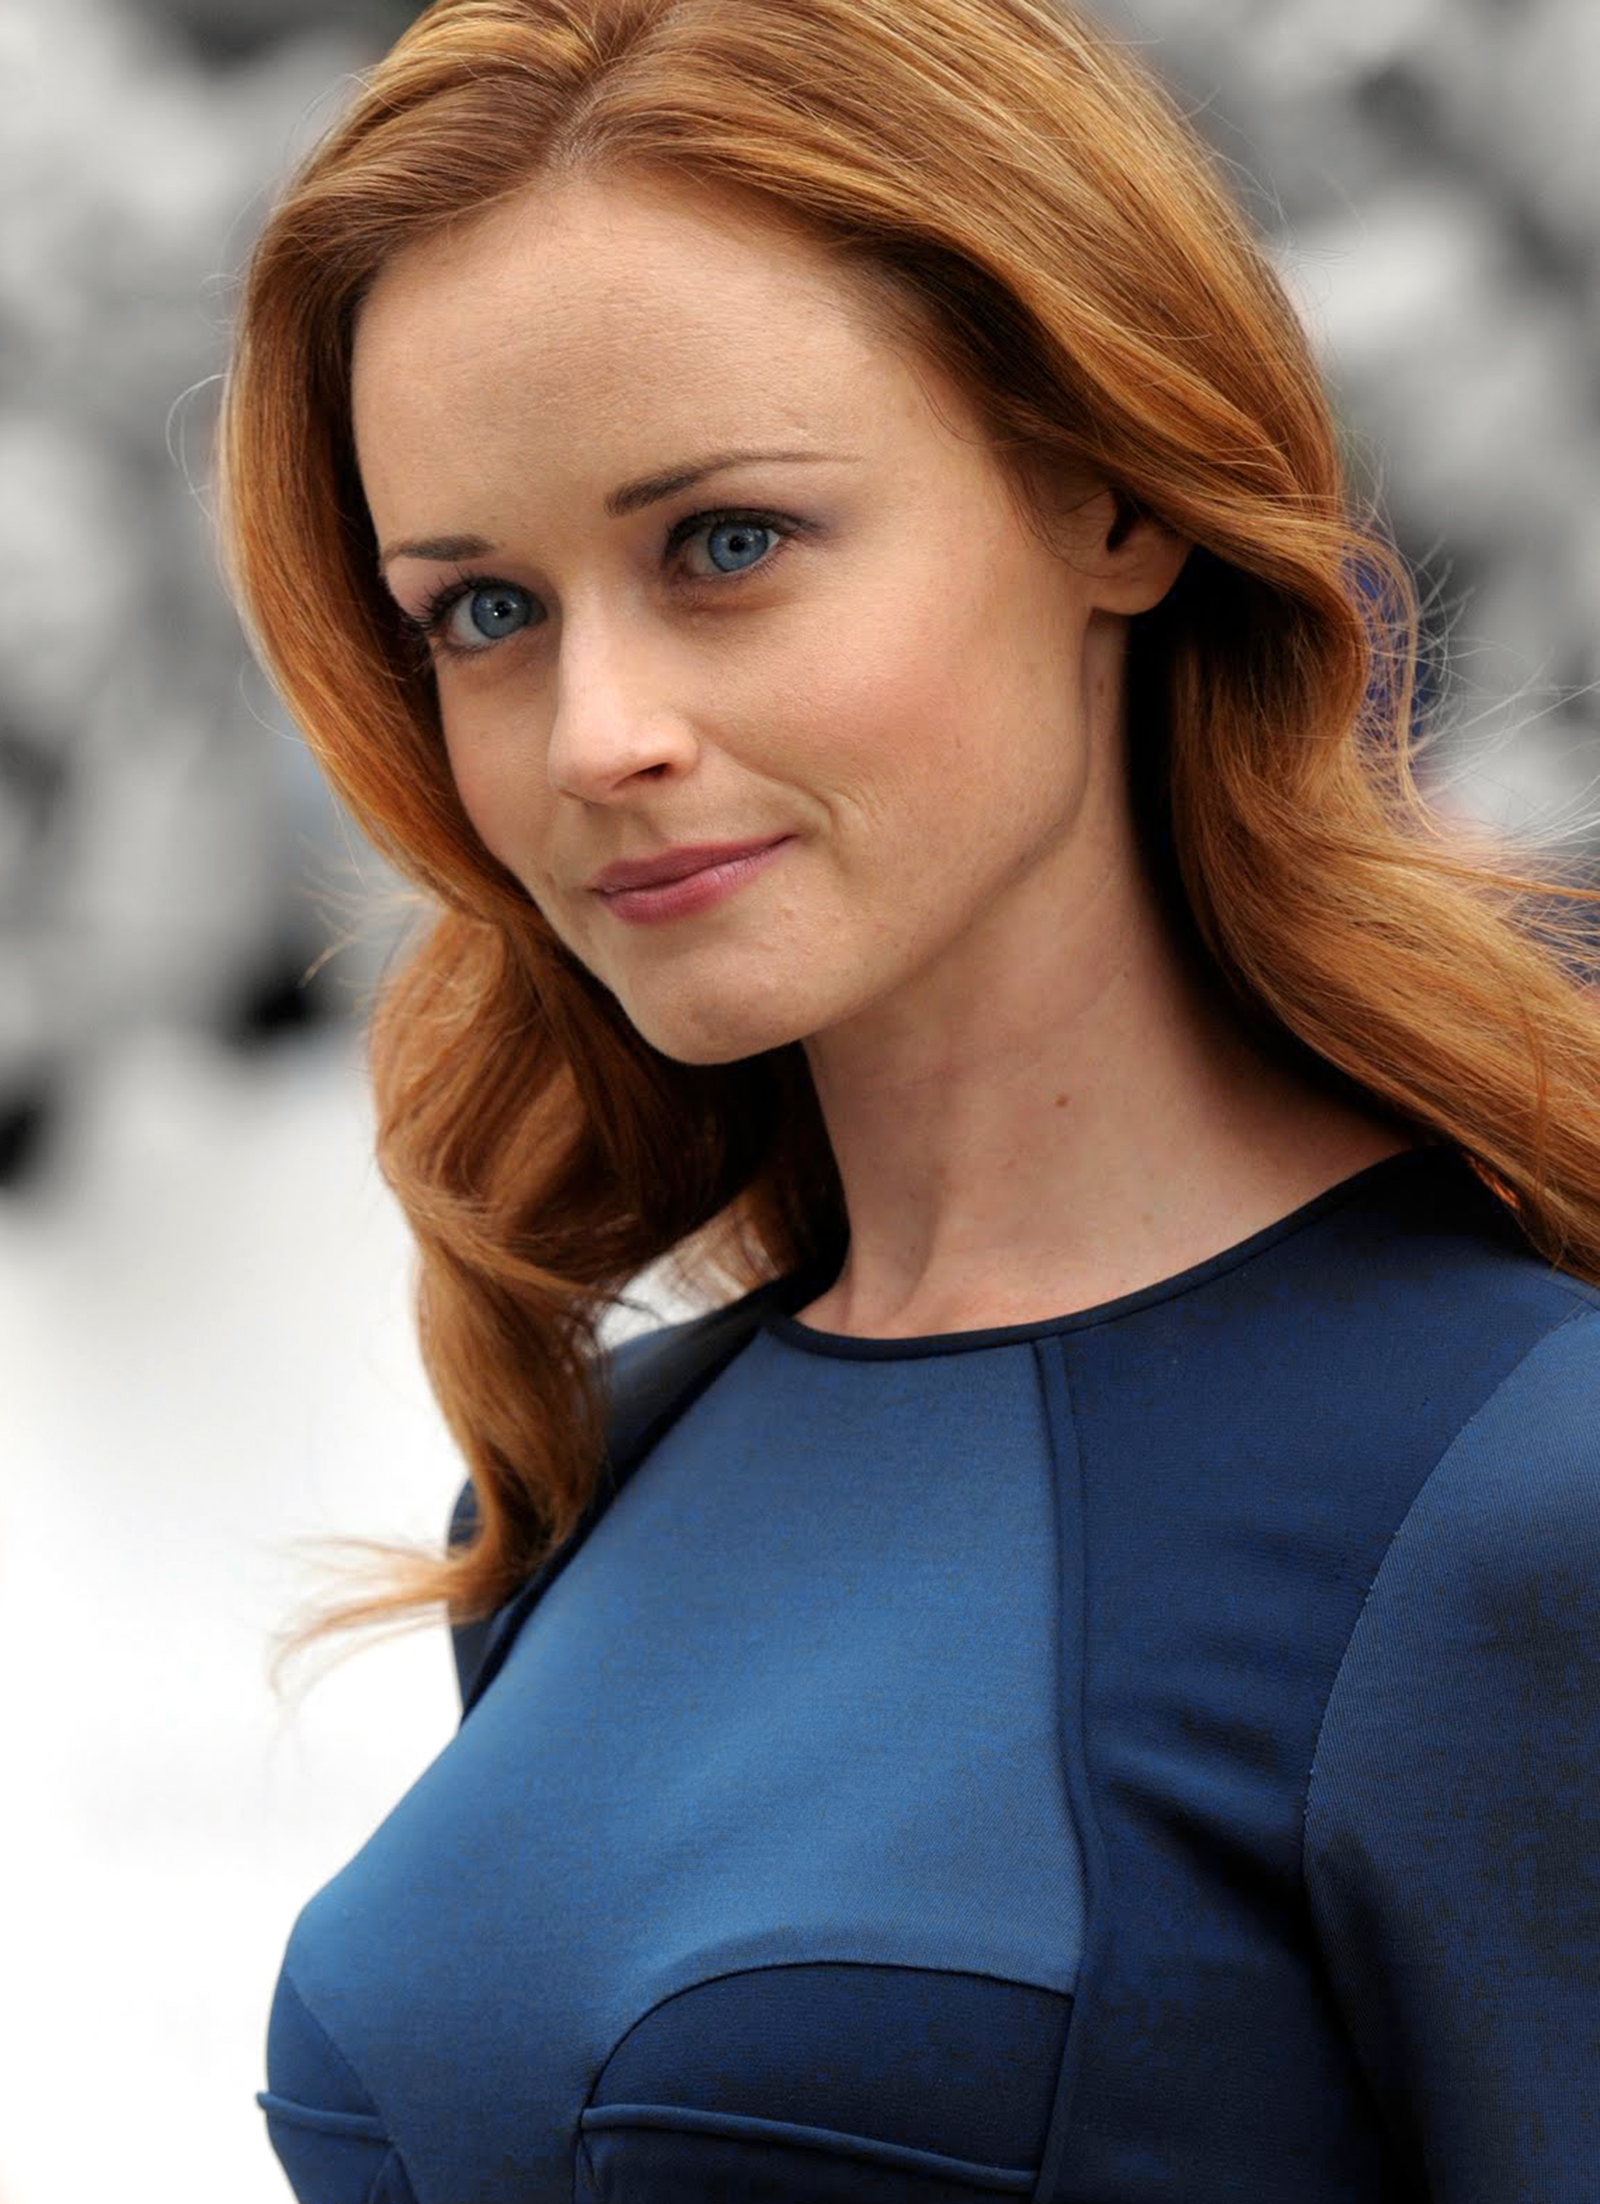 Gilmore Girls 2014 Gallery 15 Charming Alexis Bledel  Dvdbash-7515